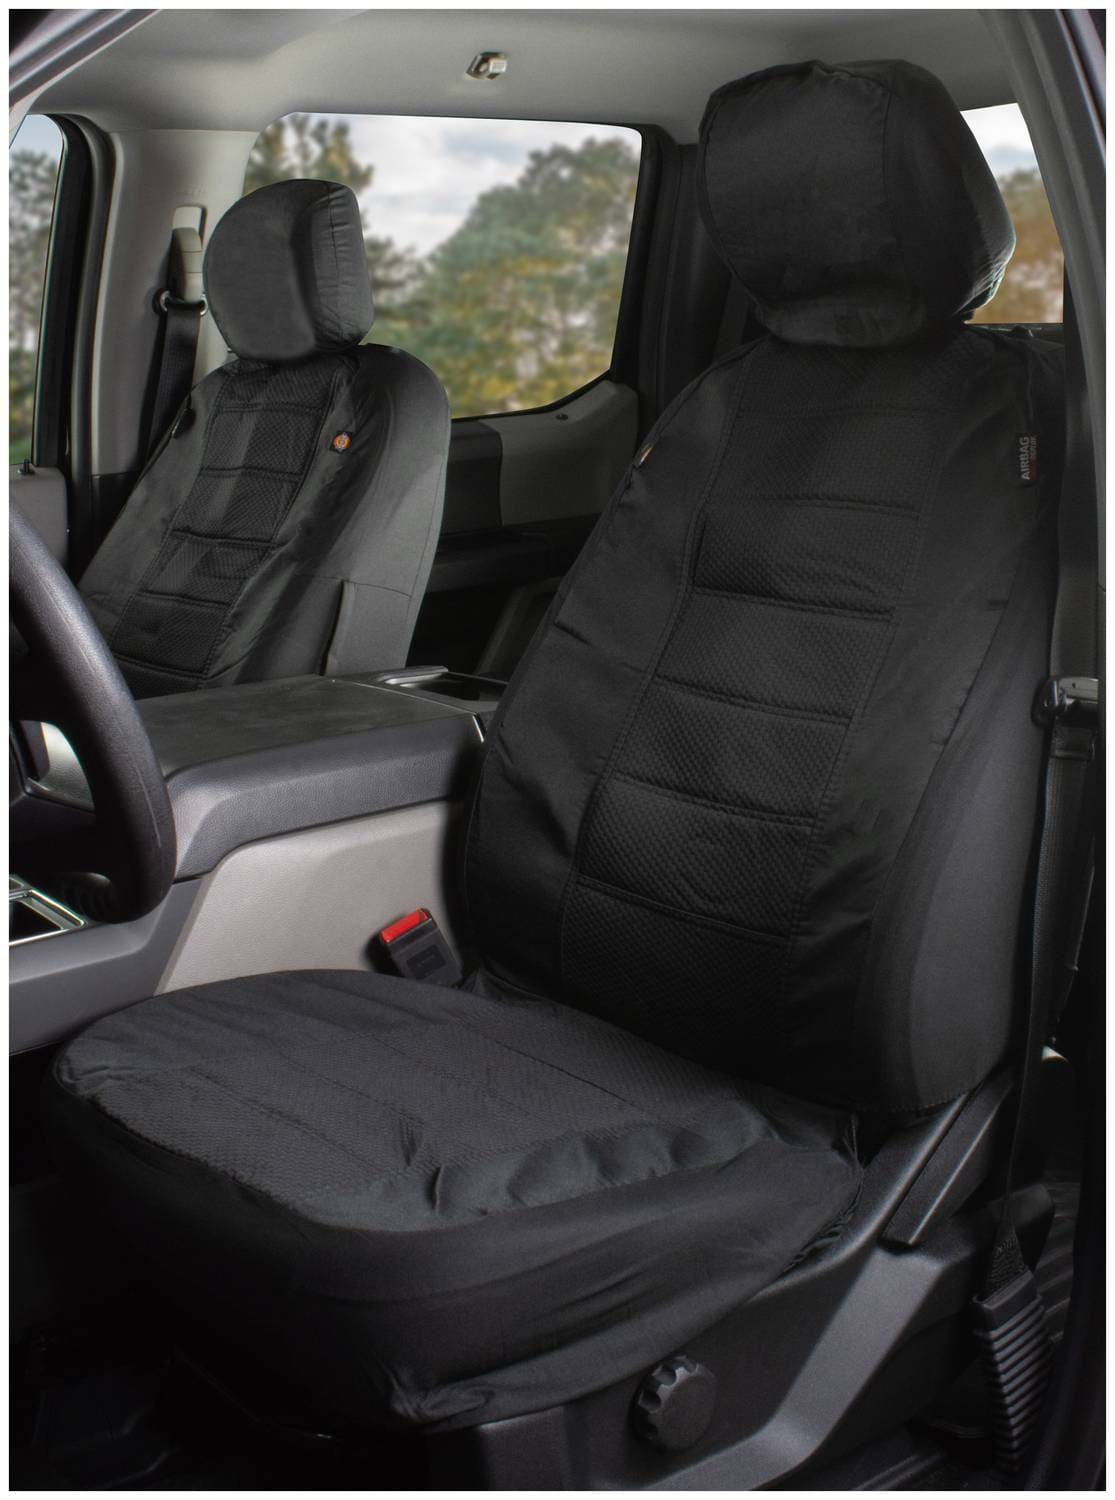 Dickies Heavy Duty Seat Covers : dickies, heavy, covers, Black, Dickies, Heavy, Bench, Protector, Interior, Accessories